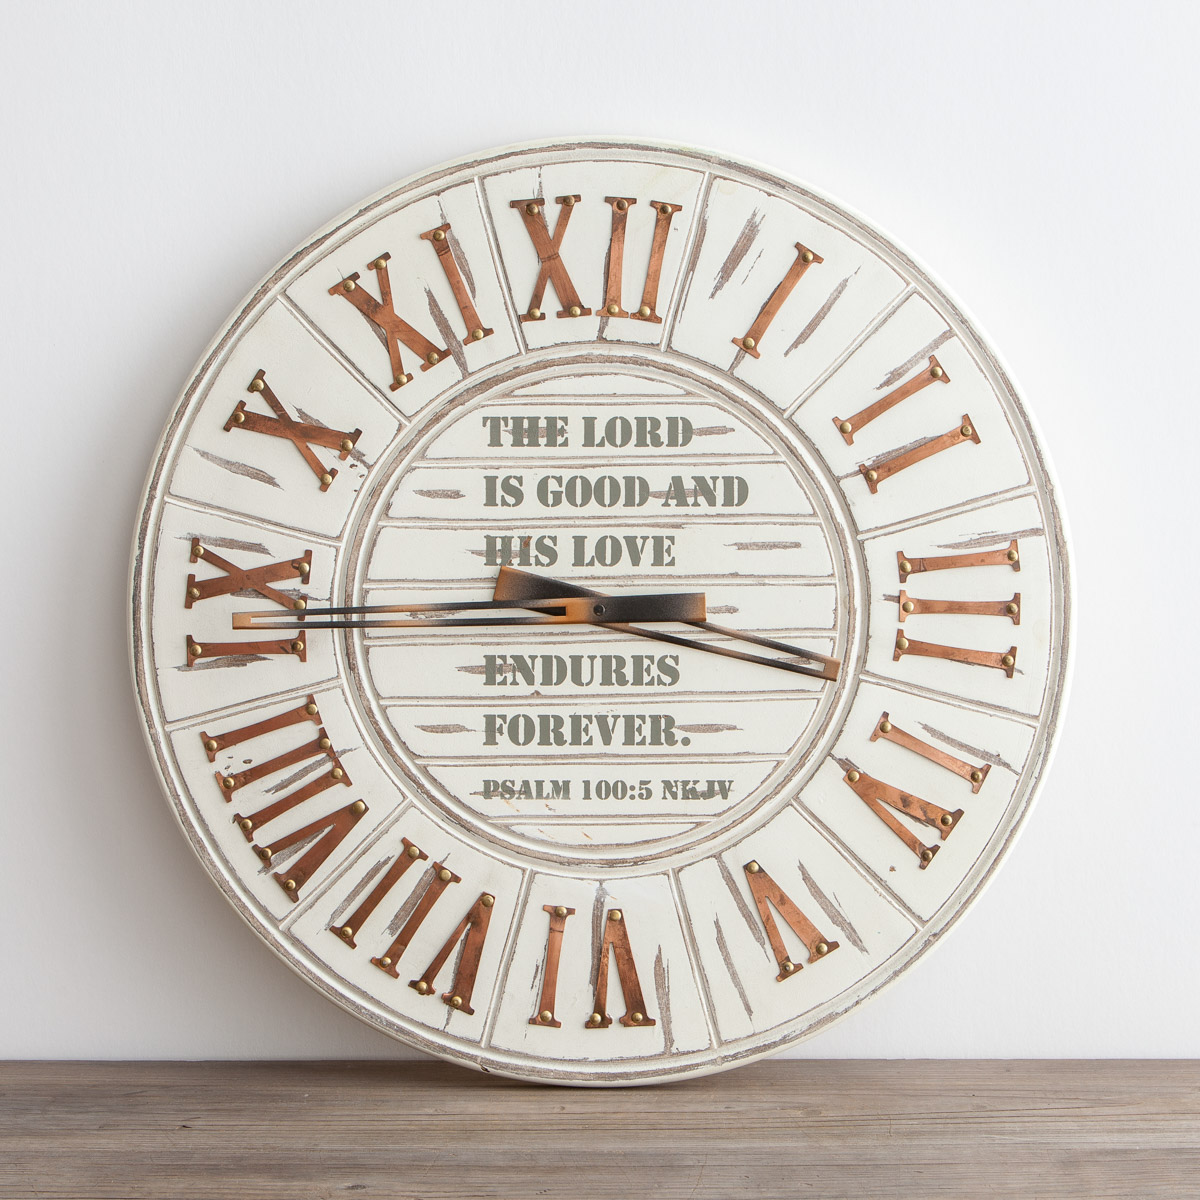 His Love Endures Forever - Wall Clock